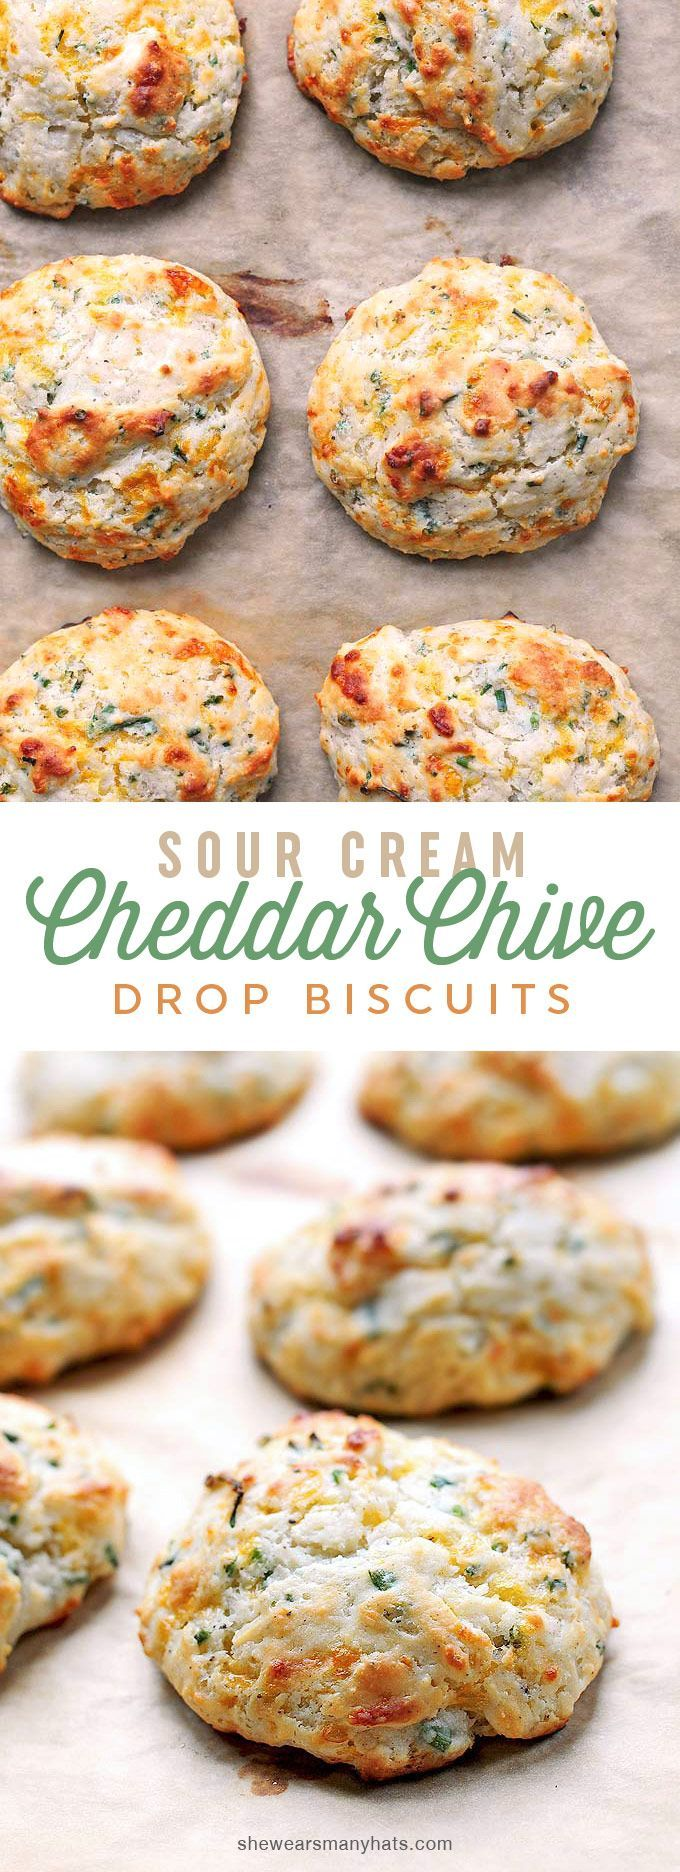 Easy Sour Cream Cheddar Chive Drop Biscuits Recipe | shewearsmanyhats.com #ad #DollopOfDaisy Sponsored By Daisy Sour Cream